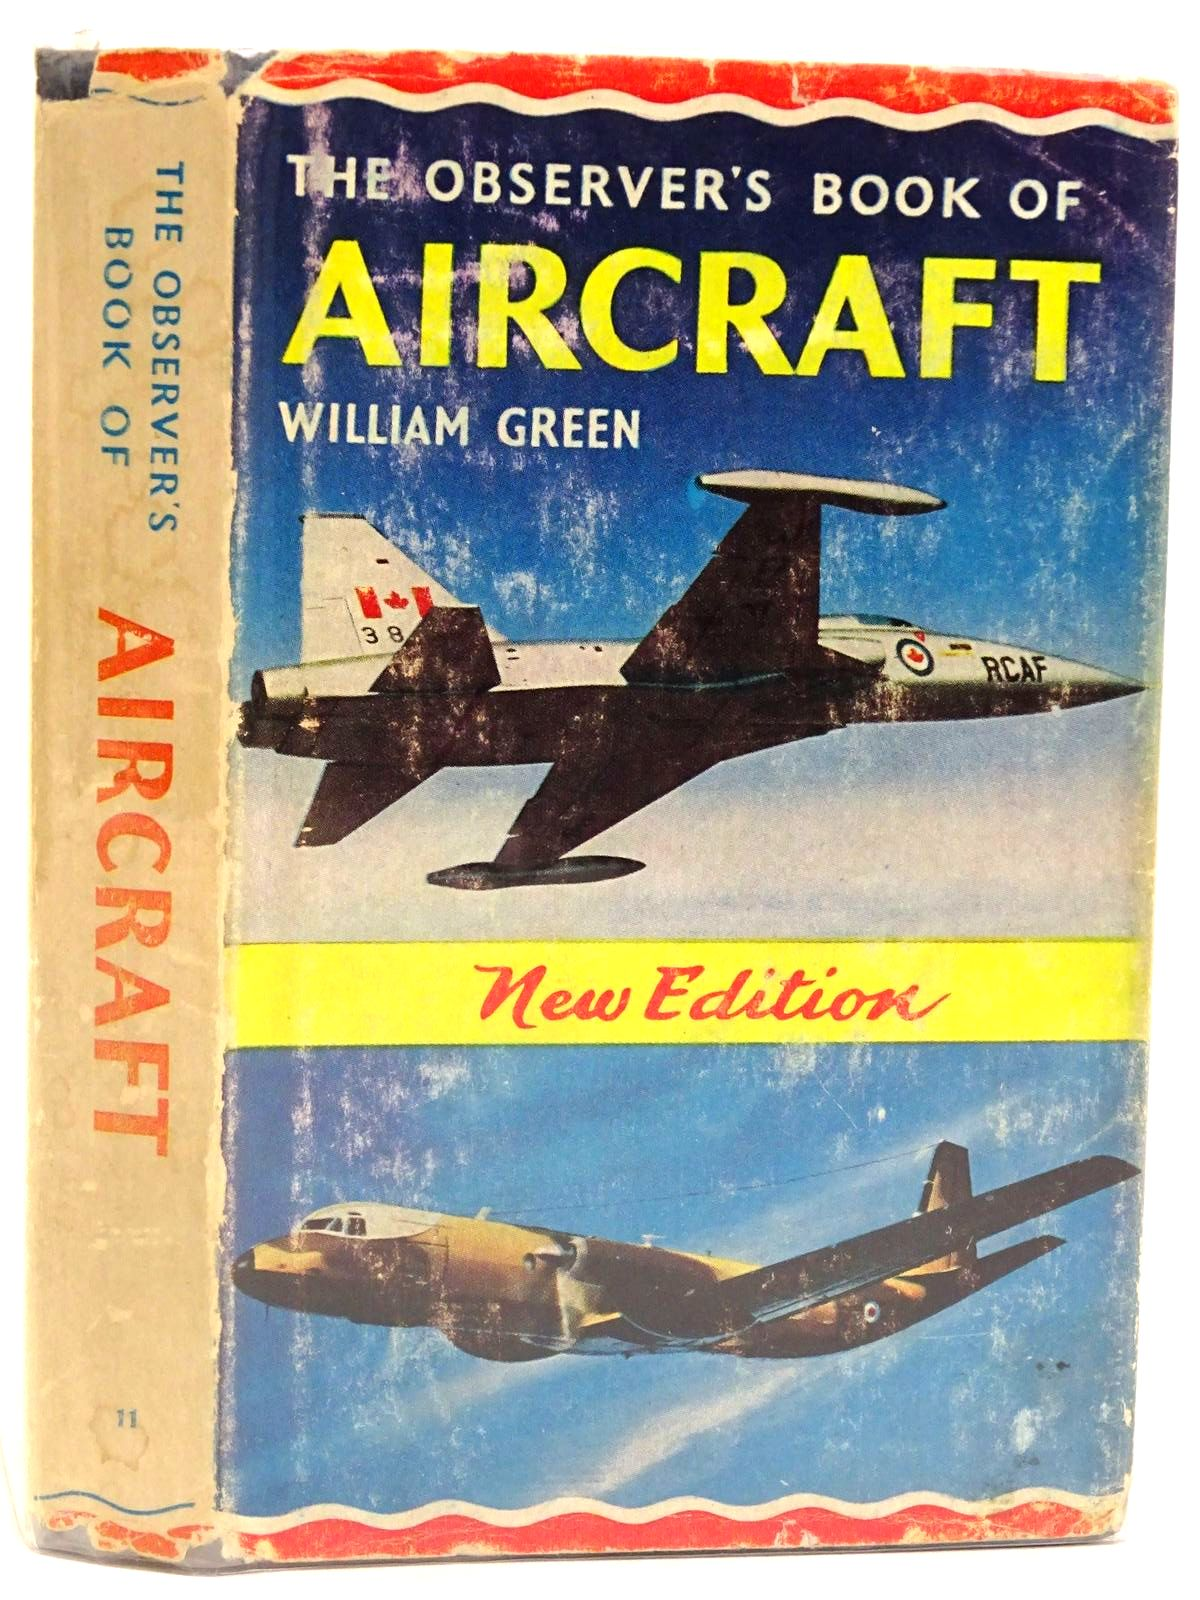 Photo of THE OBSERVER'S BOOK OF AIRCRAFT written by Green, William illustrated by Punnett, Dennis published by Frederick Warne & Co Ltd. (STOCK CODE: 1318375)  for sale by Stella & Rose's Books